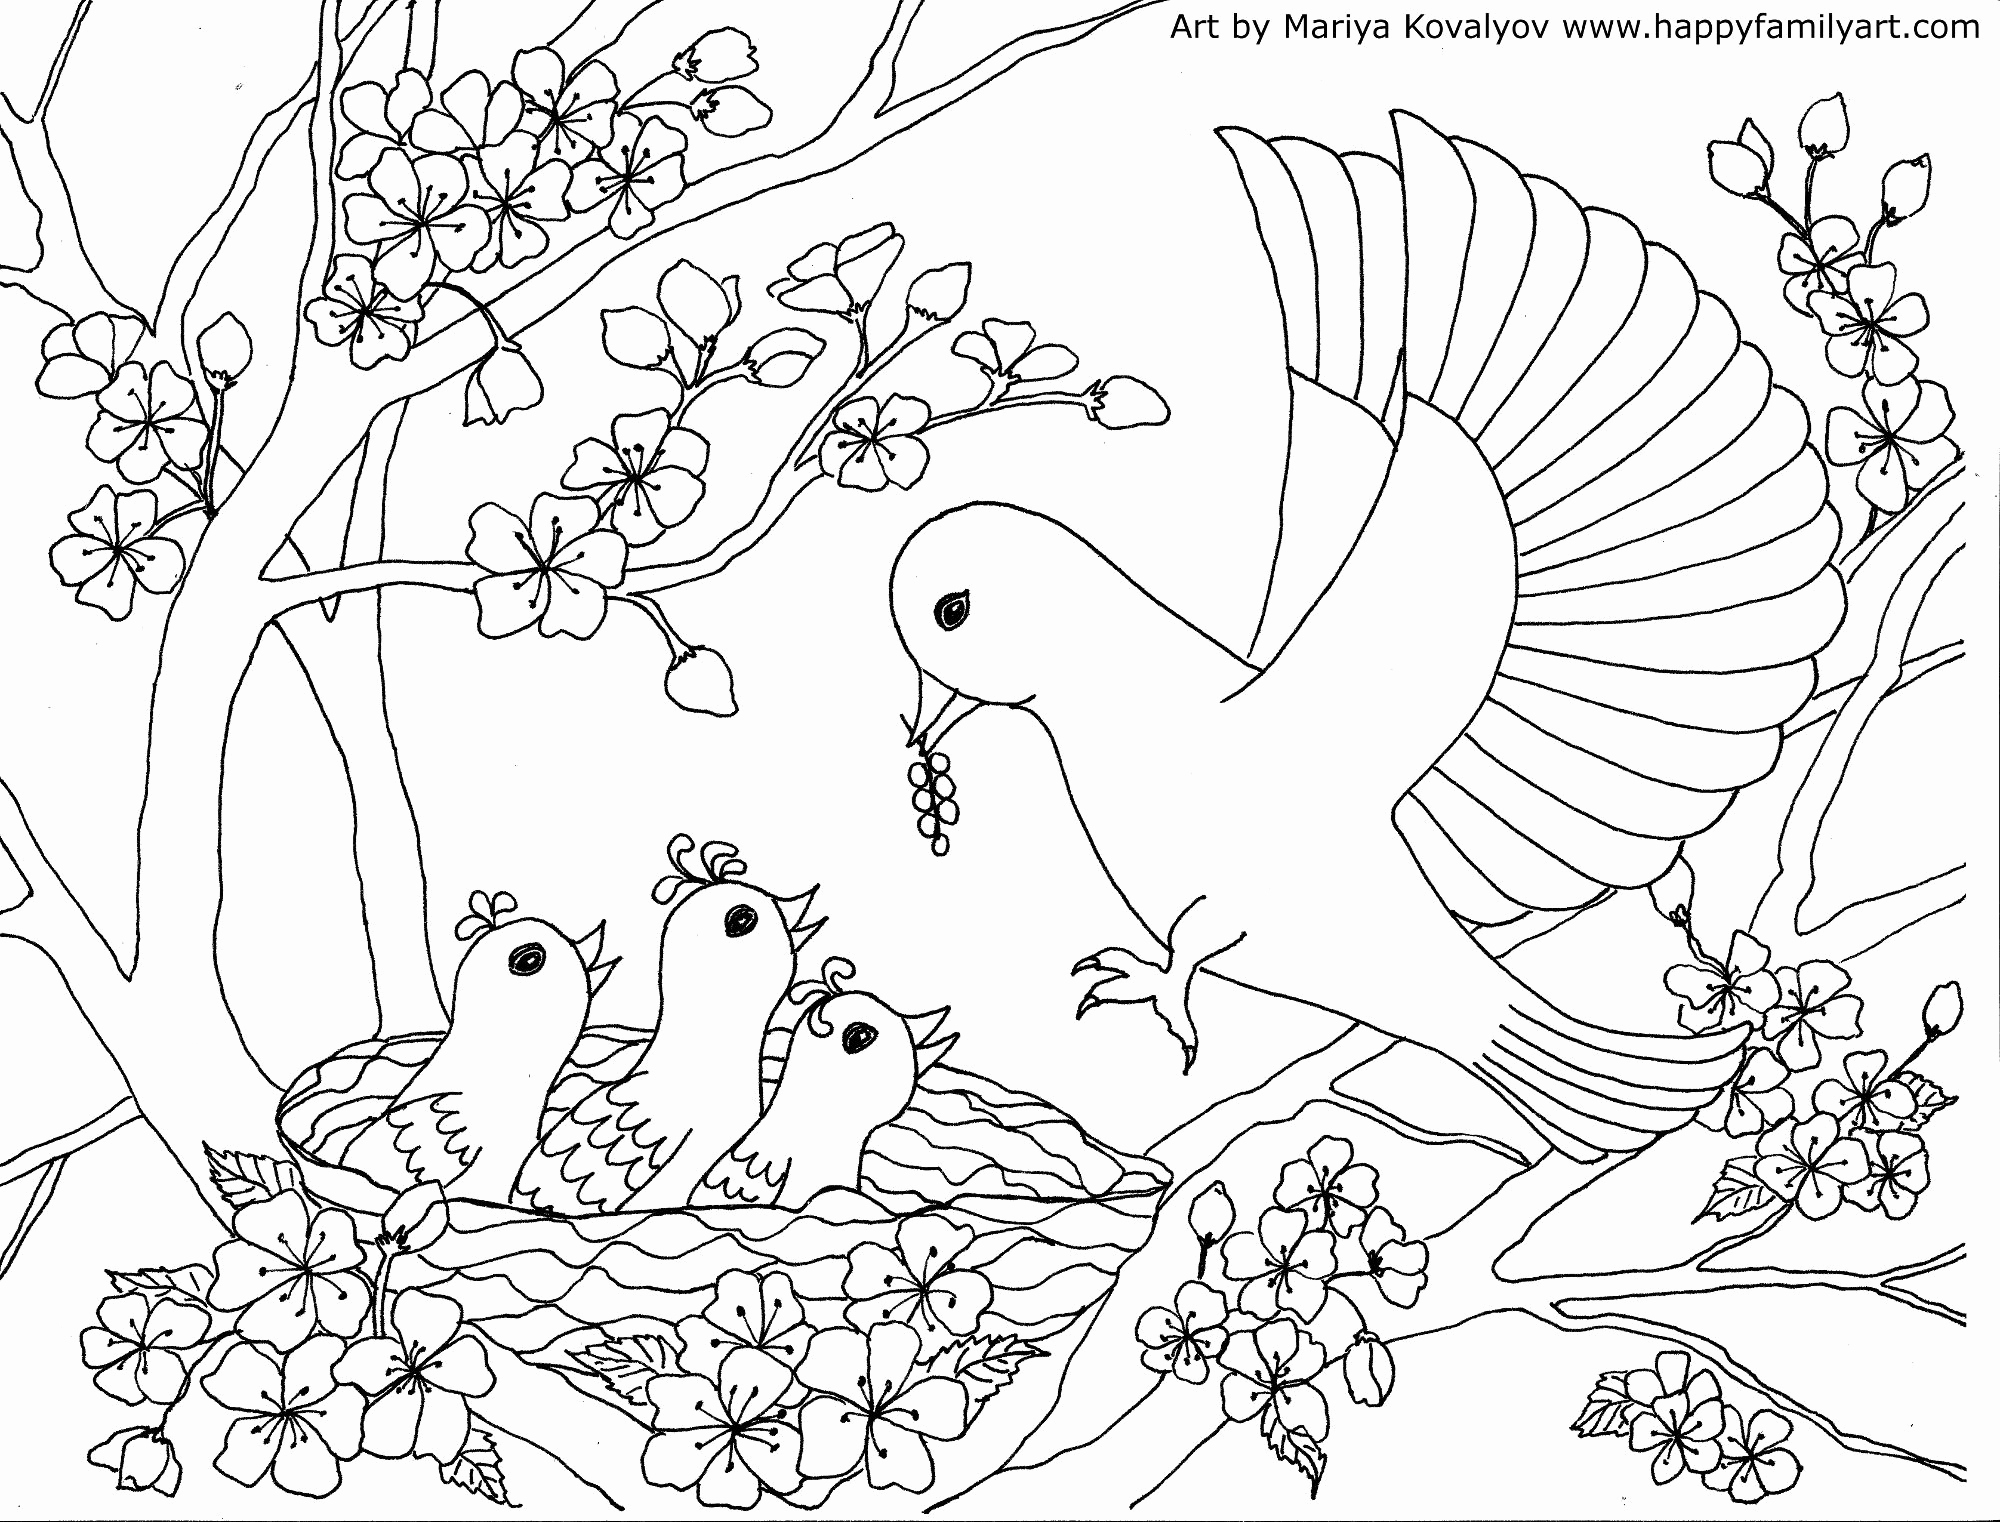 Cain And Abel Coloring Page At Getdrawings